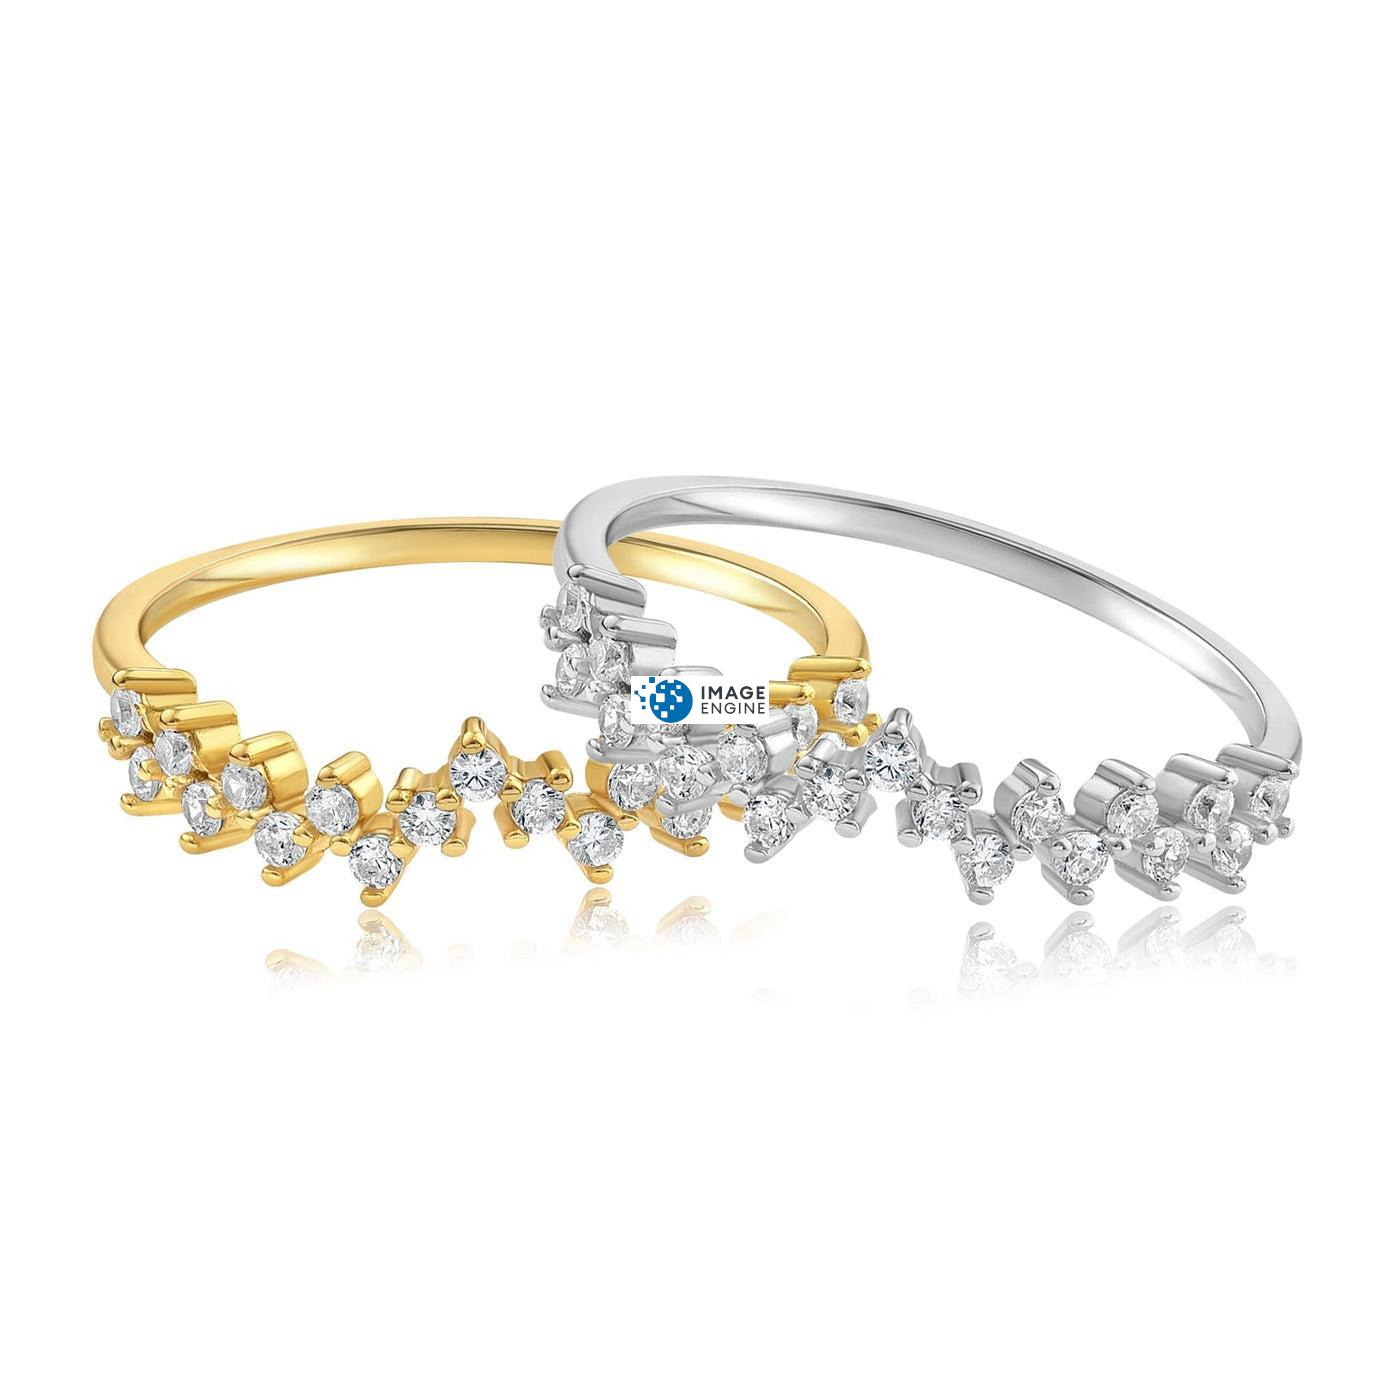 Esther Petite Cluster Ring - Front View Side by Side - 18K Yellow Gold Vermeil and 925 Sterling Silver